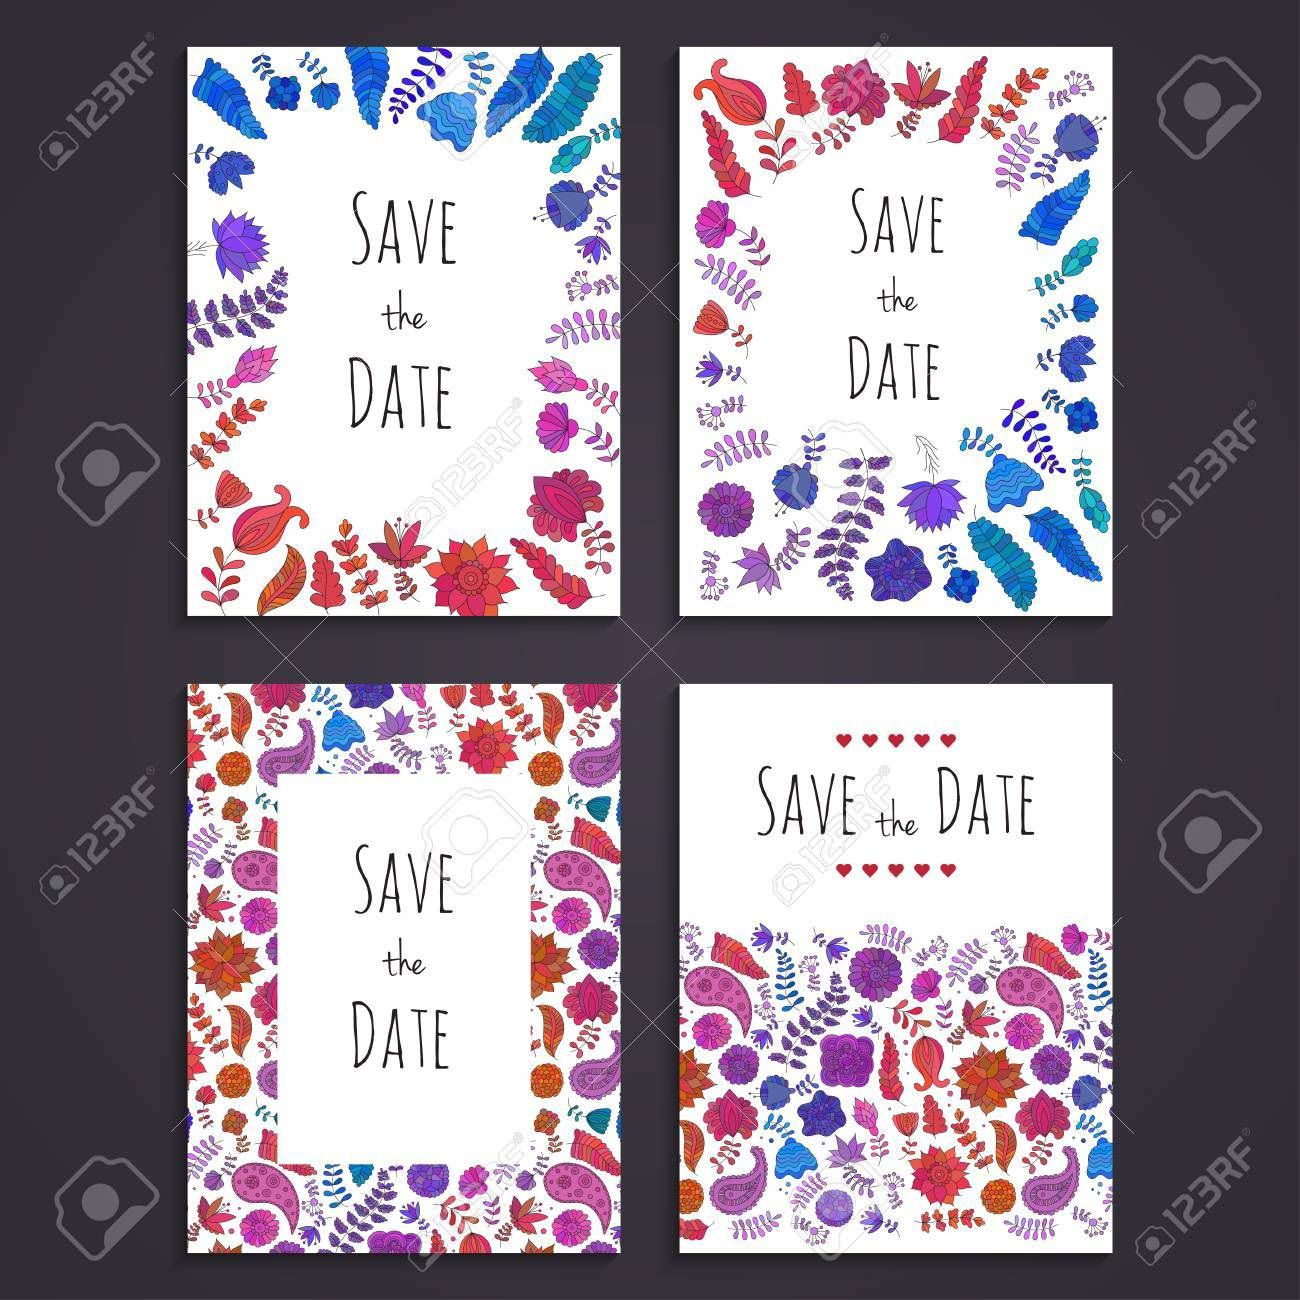 003 Staggering Free Save The Date Birthday Postcard Template High Def Full